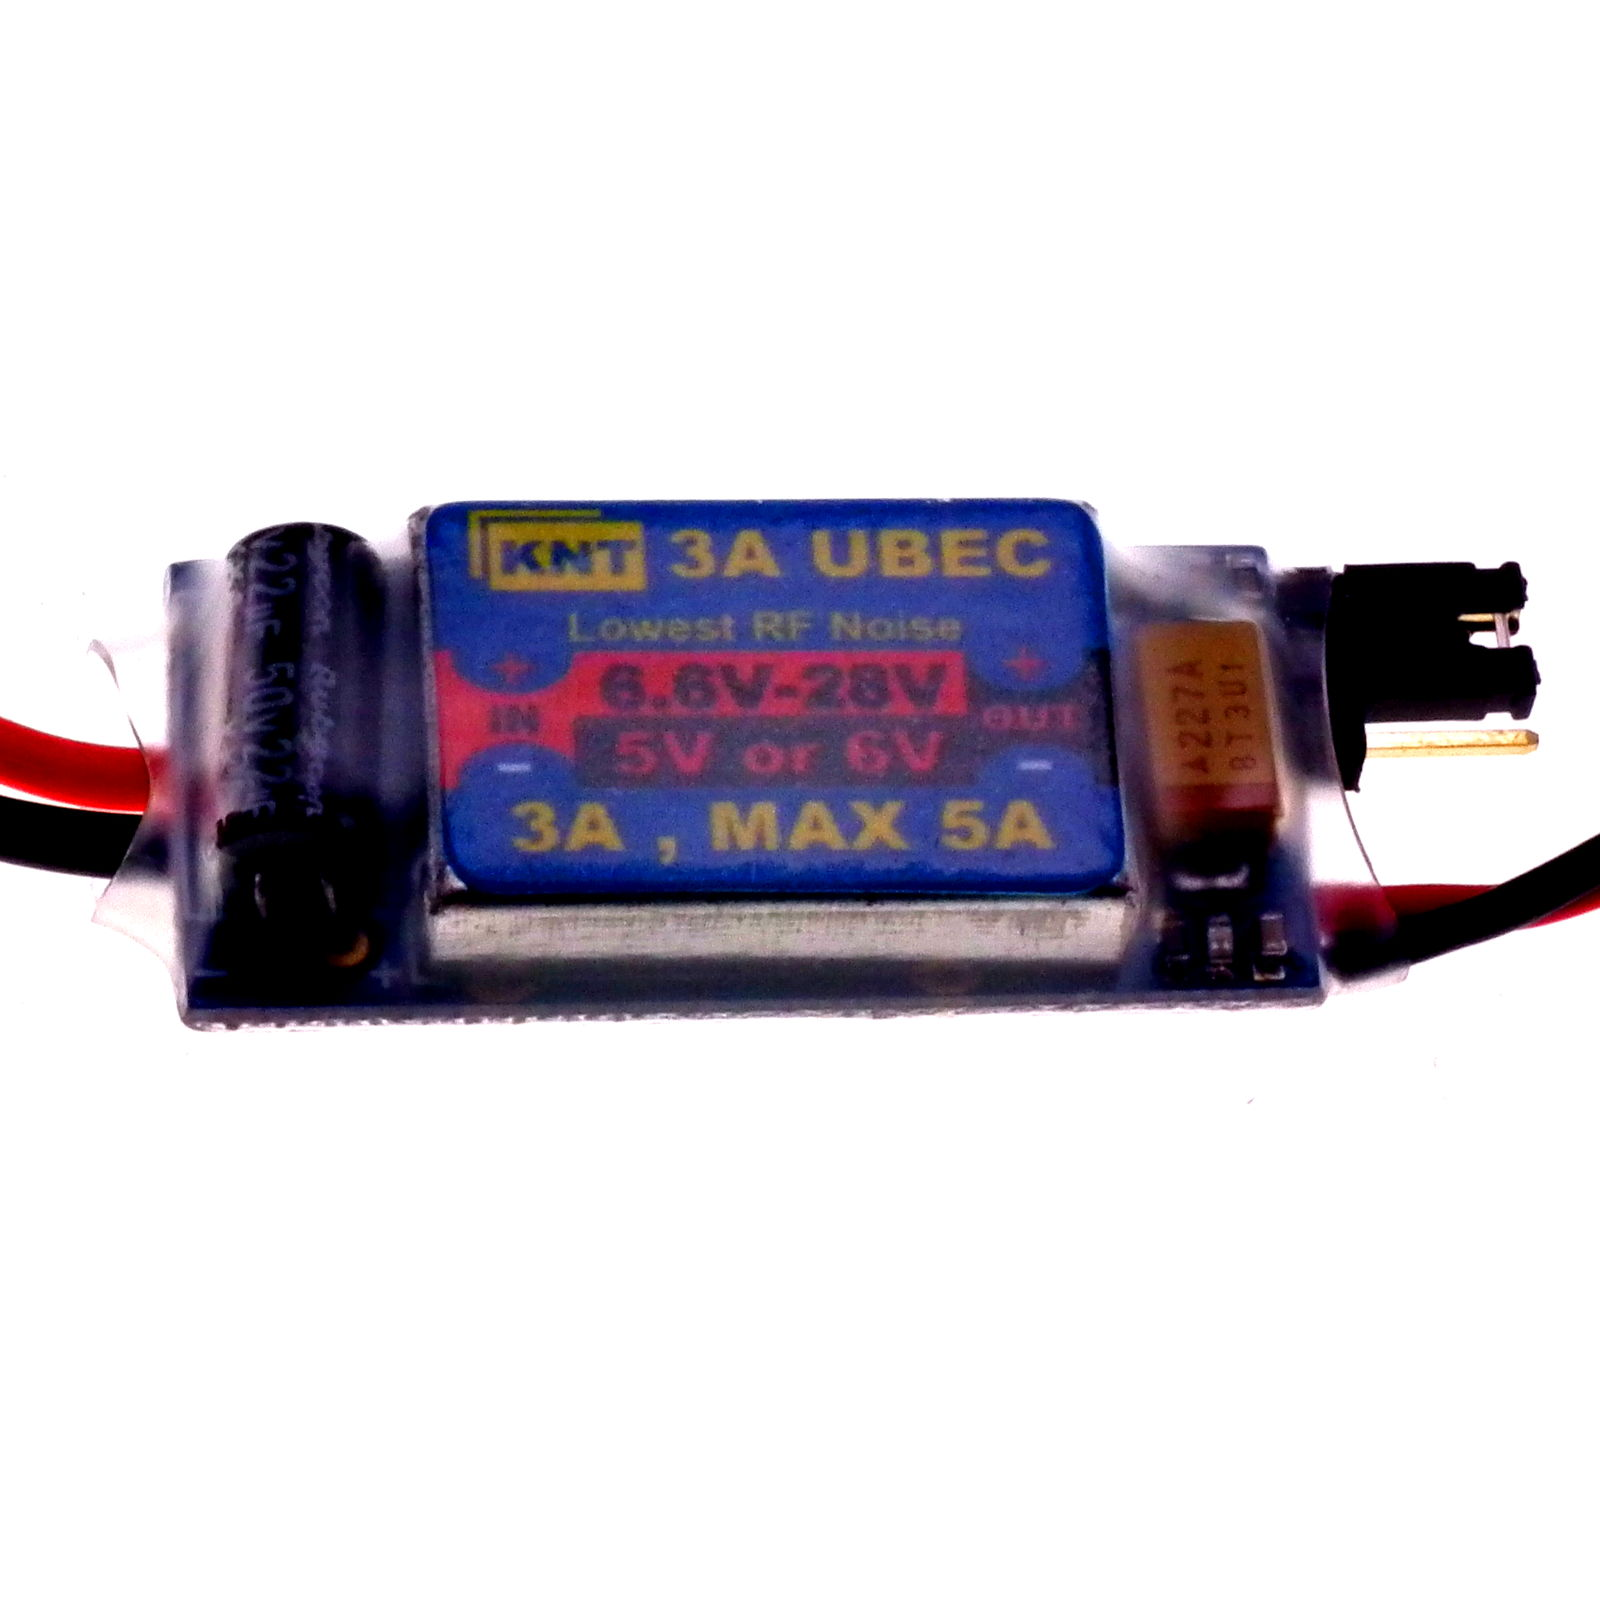 Power Supply Component Shop 24 Volt 30 Amp Single Output 3a Max 5a Universal Battery Eliminator Circuit Ubec Knt